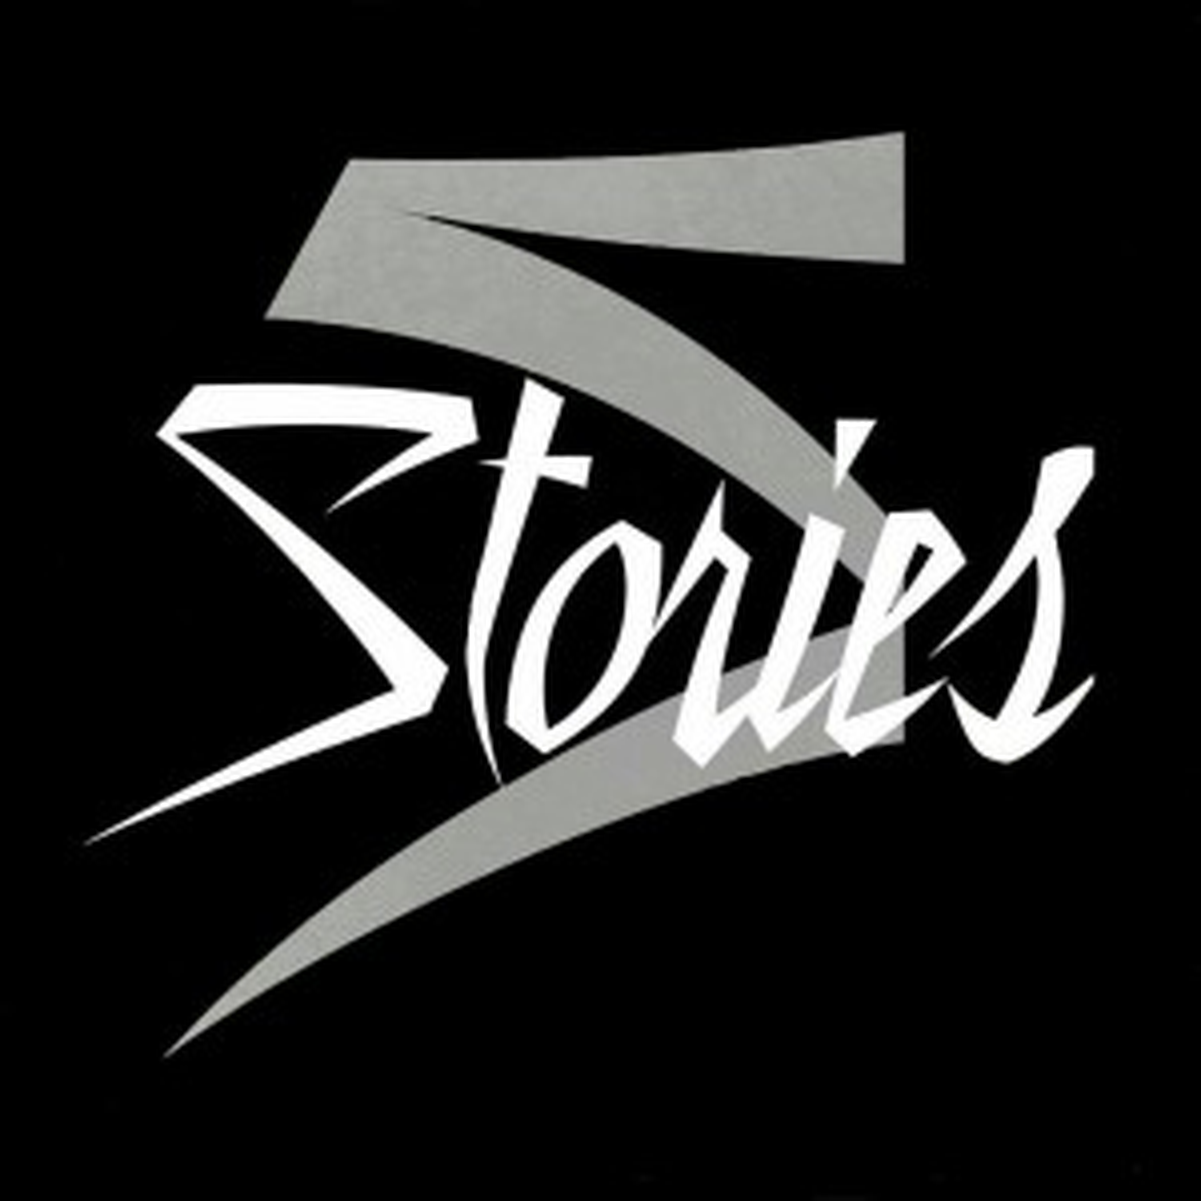 5Stories wiki, 5Stories review, 5Stories history, 5Stories news